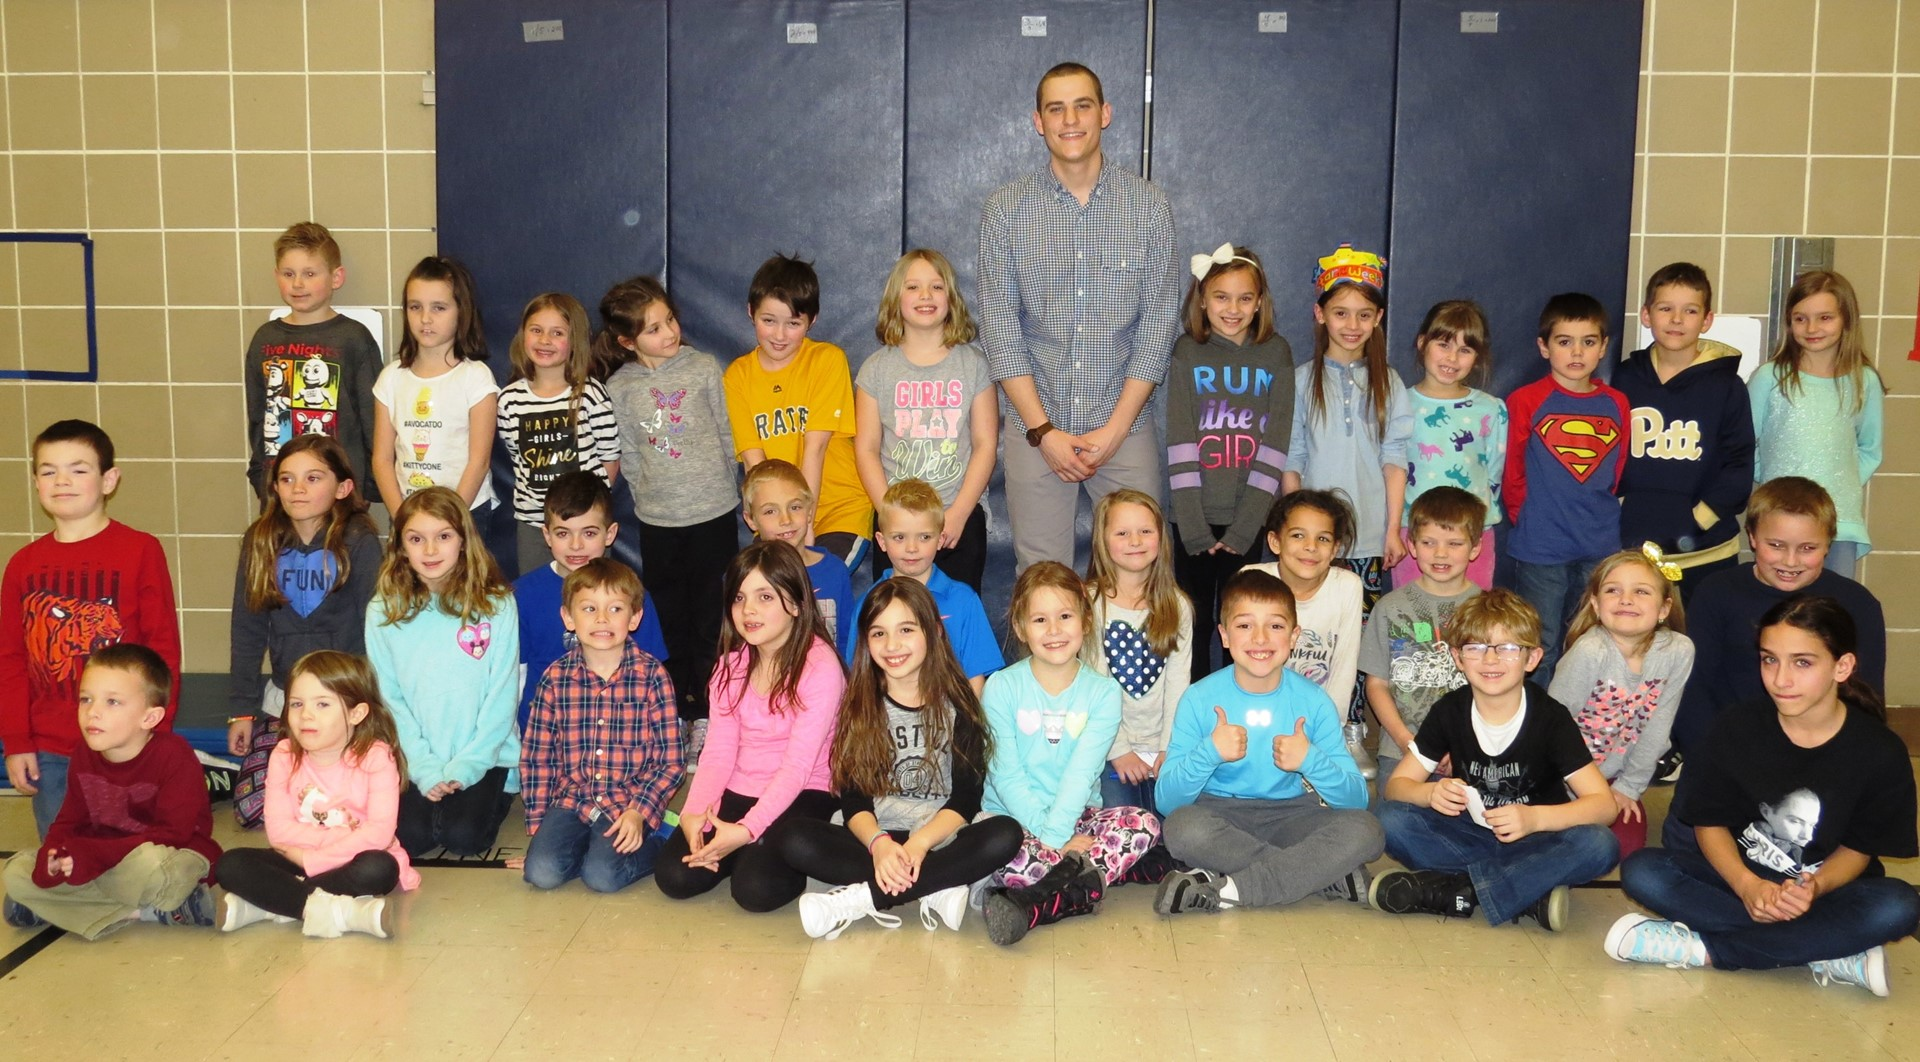 Celebrating March Music month with Mr. Chris Jamison